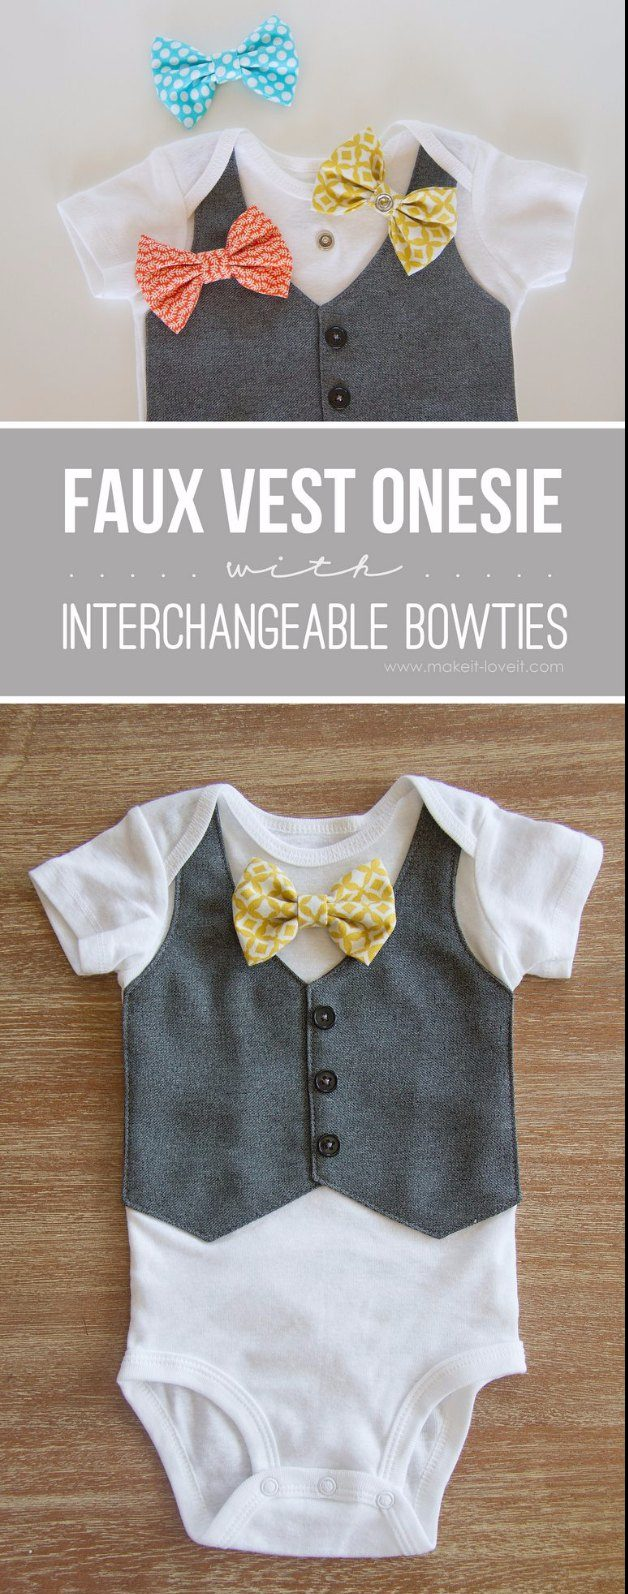 DIY Baby Gifts - Faux Vest Onesie with Interchangeable Bowties - Homemade Baby Shower Presents and Creative, Cheap Gift Ideas for Boys and Girls - Unique Gifts for the Mom and Dad to Be - Blankets, Baskets, Burp Cloths and Easy No Sew Projects #diybaby #babygifts #babyshower